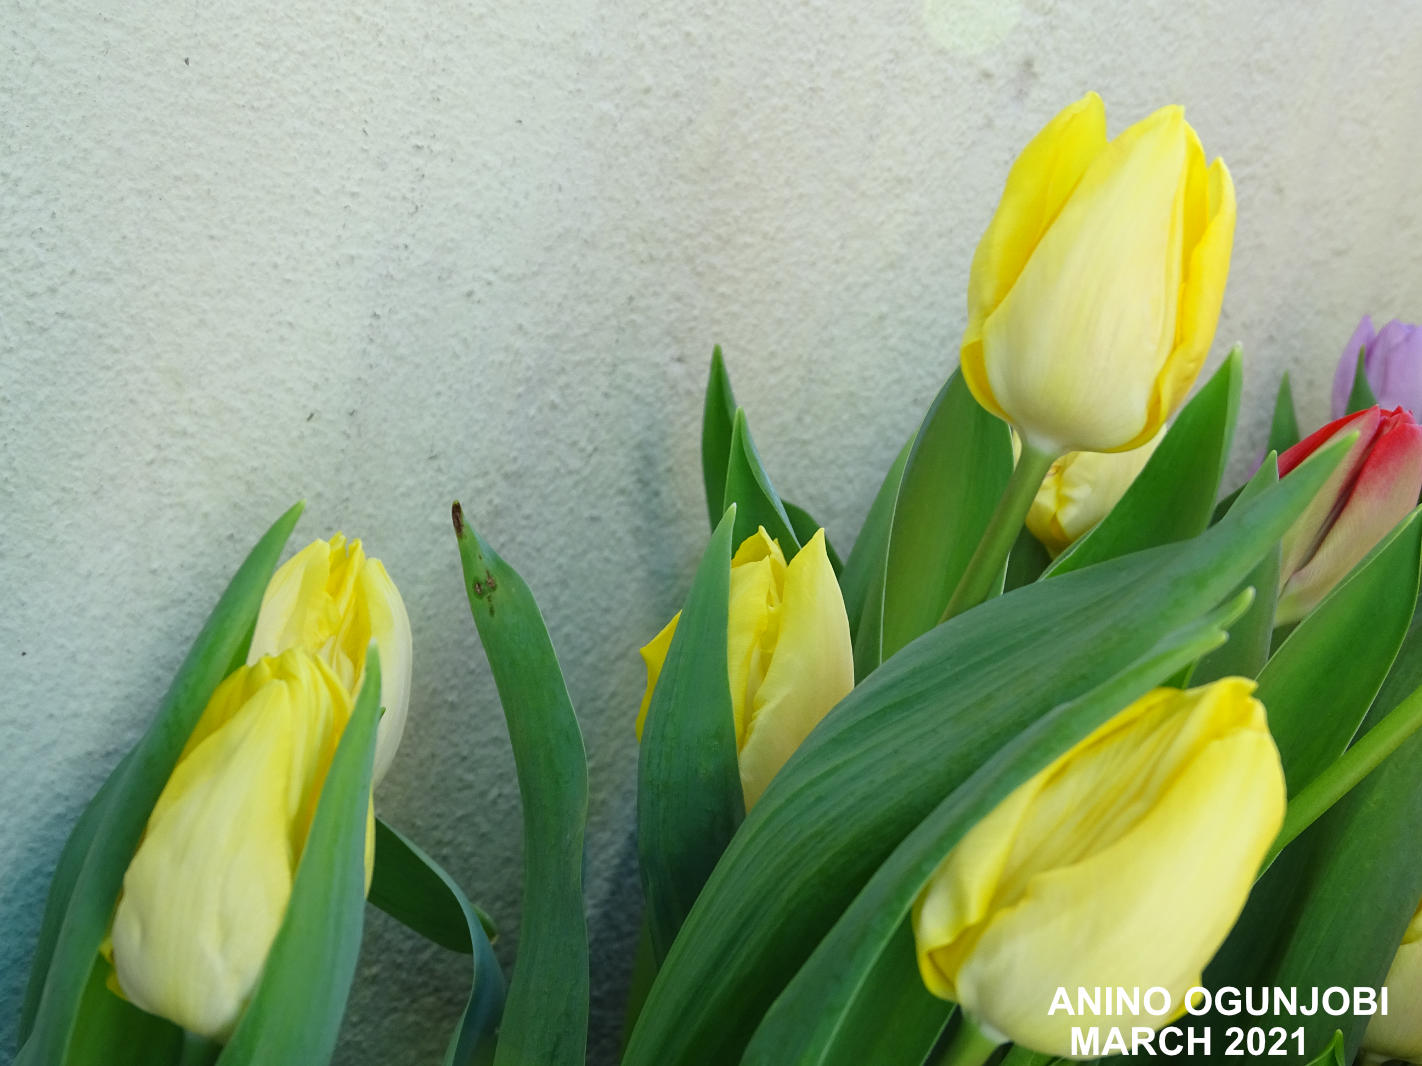 Blooms-of-the-Tulips-Triumph-Yokohama-by-Anino-and-Crafters-TV